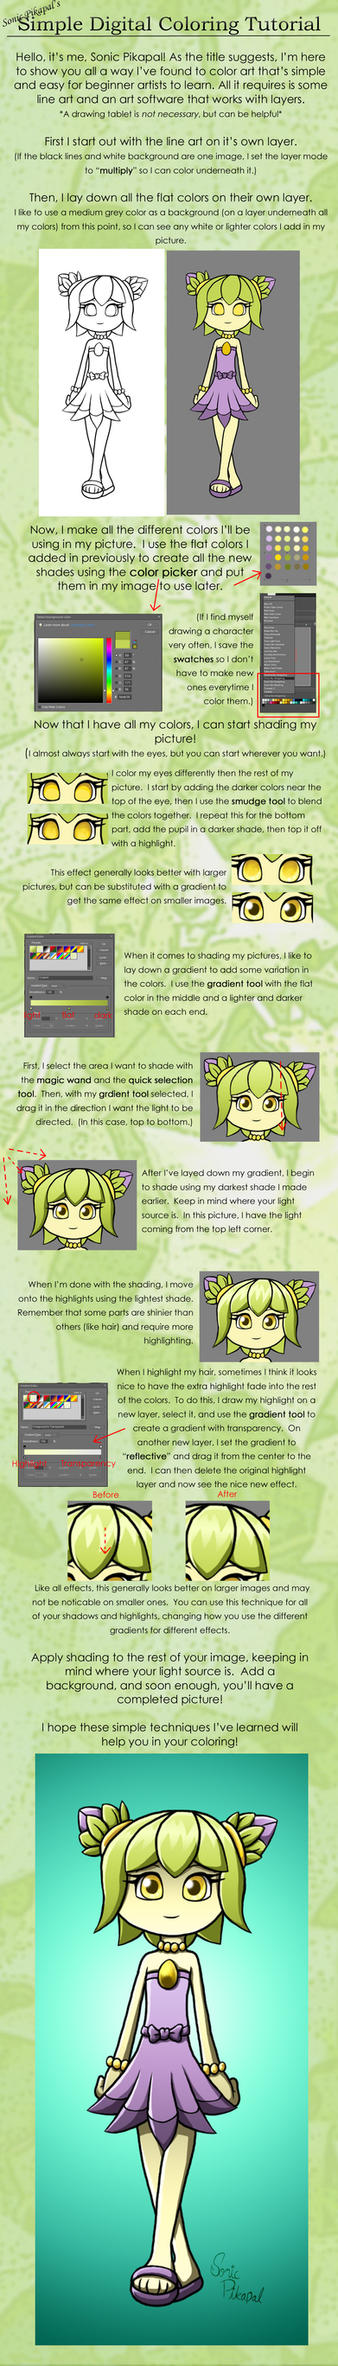 Simple Digital Coloring Tutorial by SonicPikapal on DeviantArt